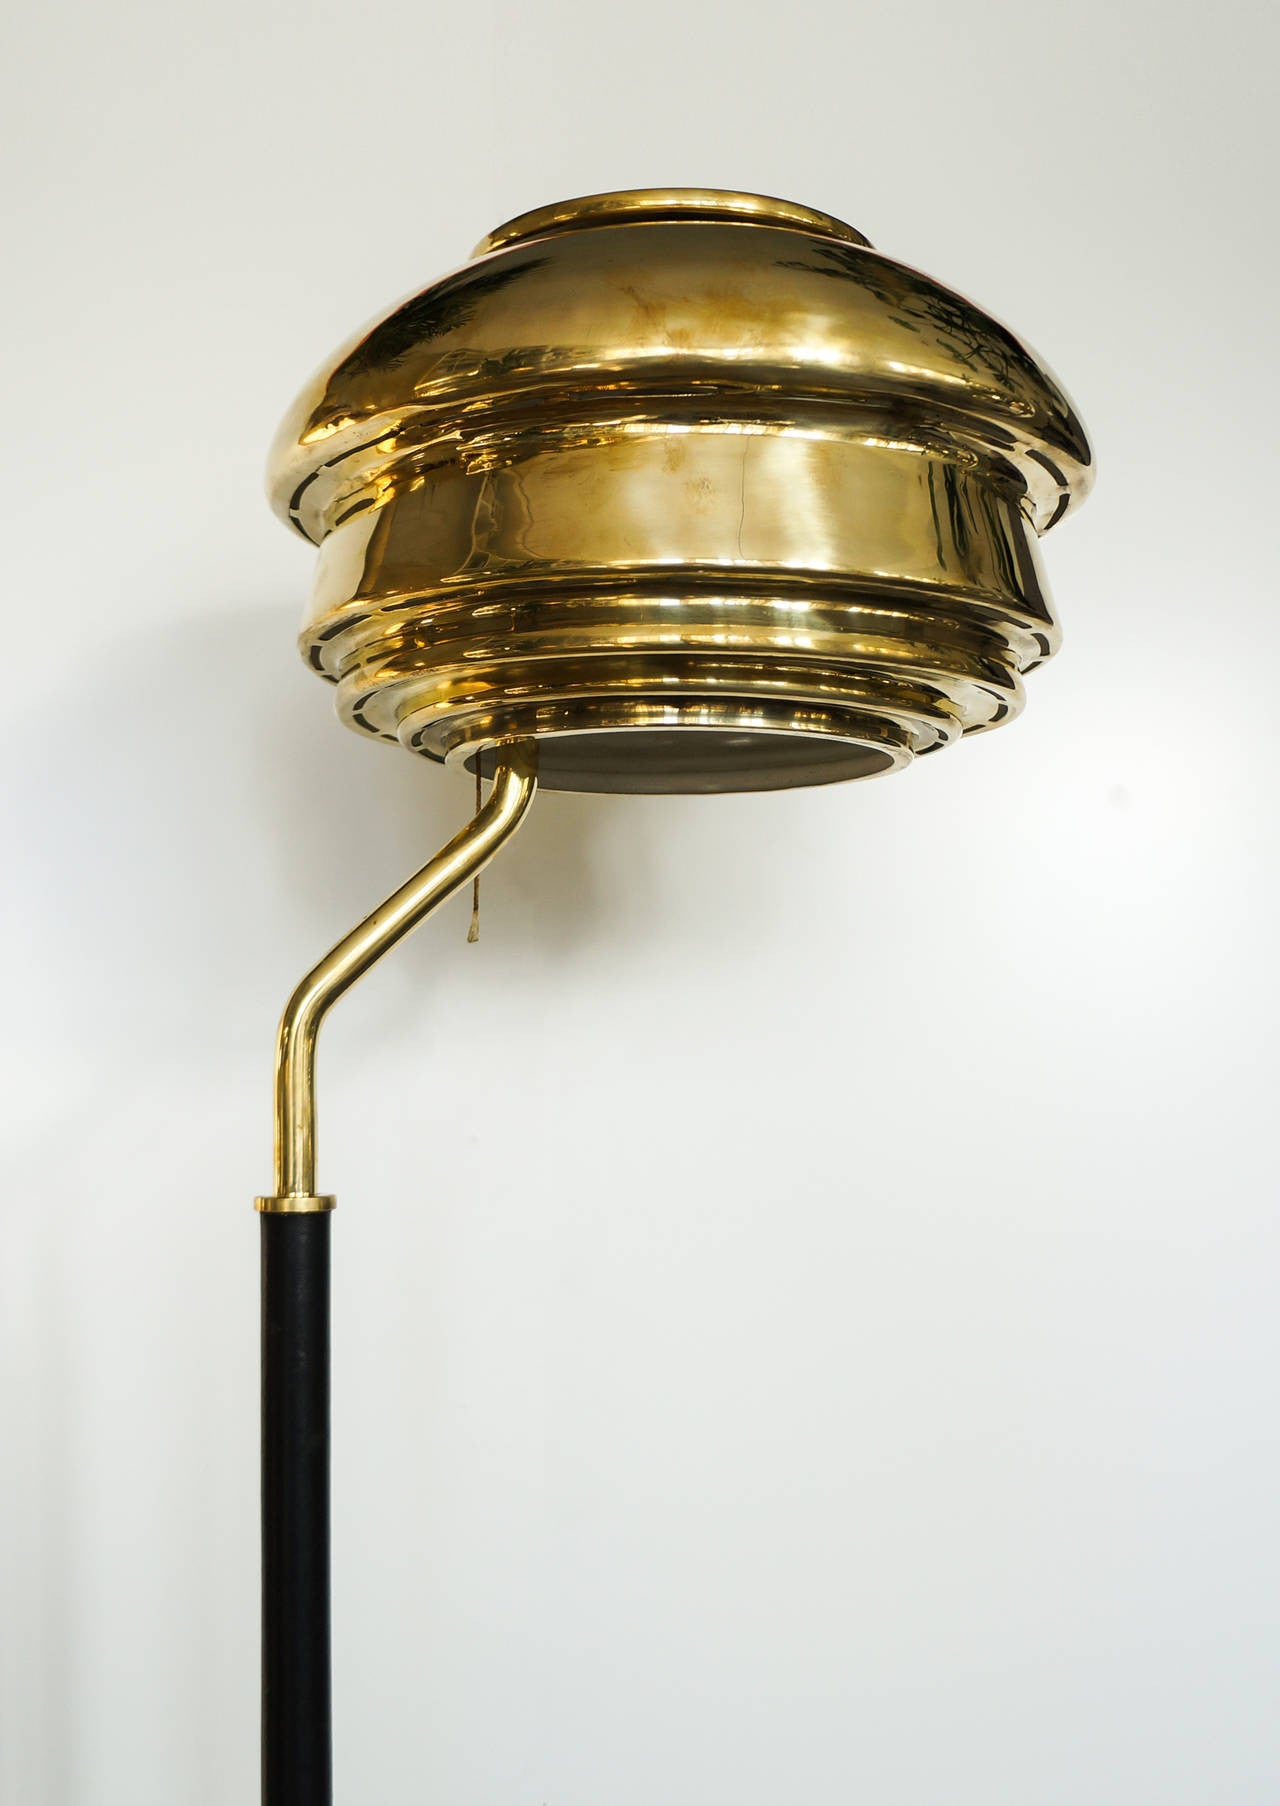 Early Alvar Aalto, Floor Lamp, Model A808, by Valaistustyö Ky, 1950s